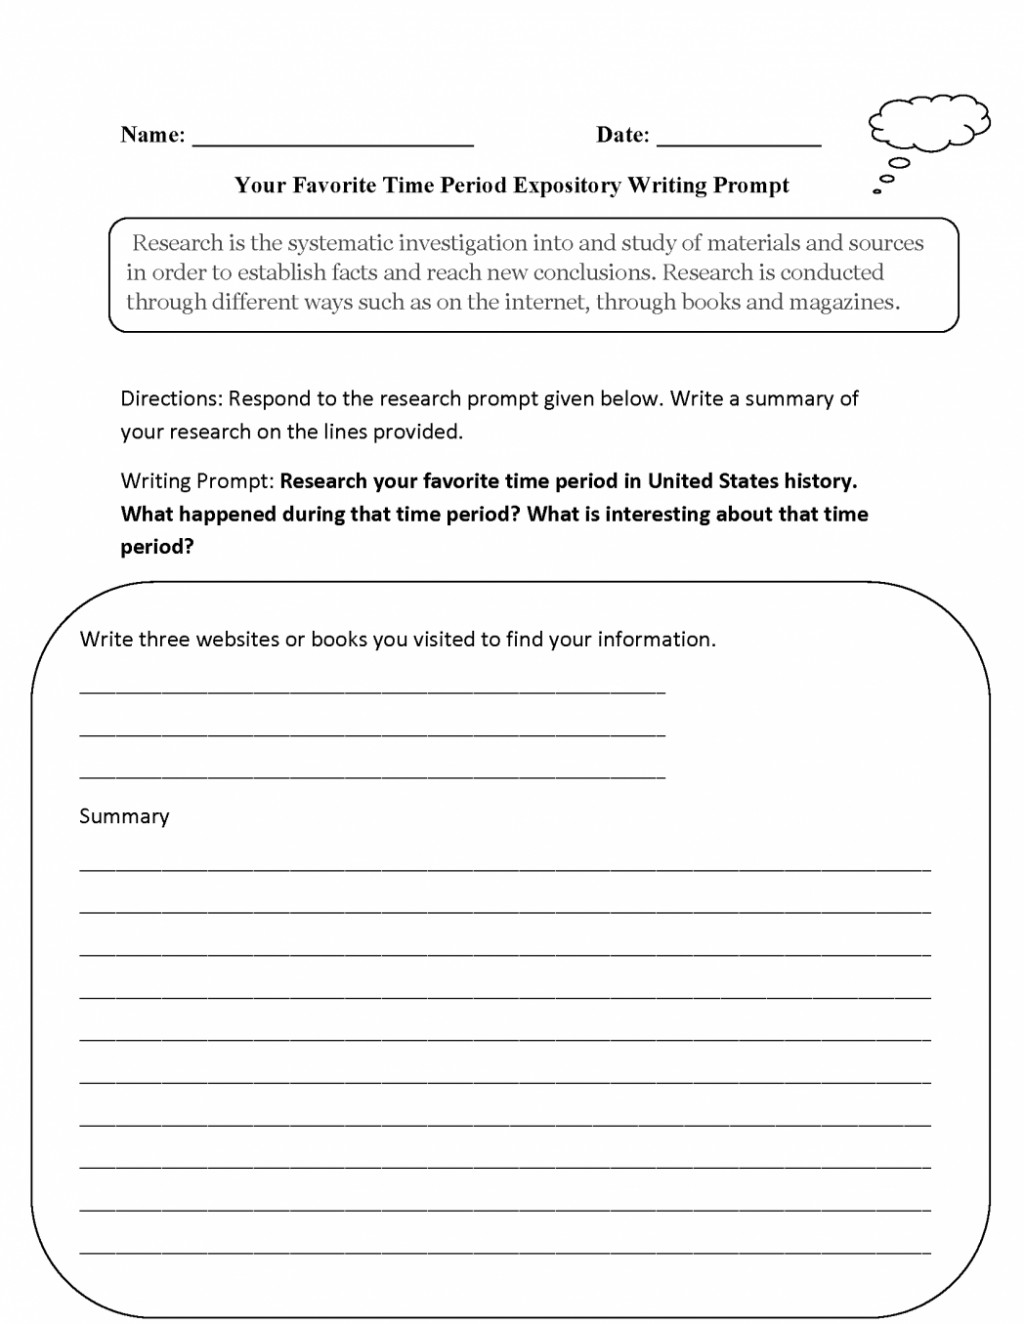 018 Essay Example Good Informative Topics Prompts Favorite Time Period Expository Writing P To Write An On The Topic Of Immigration Remarkable For 4th Grade High School 6th Graders Large